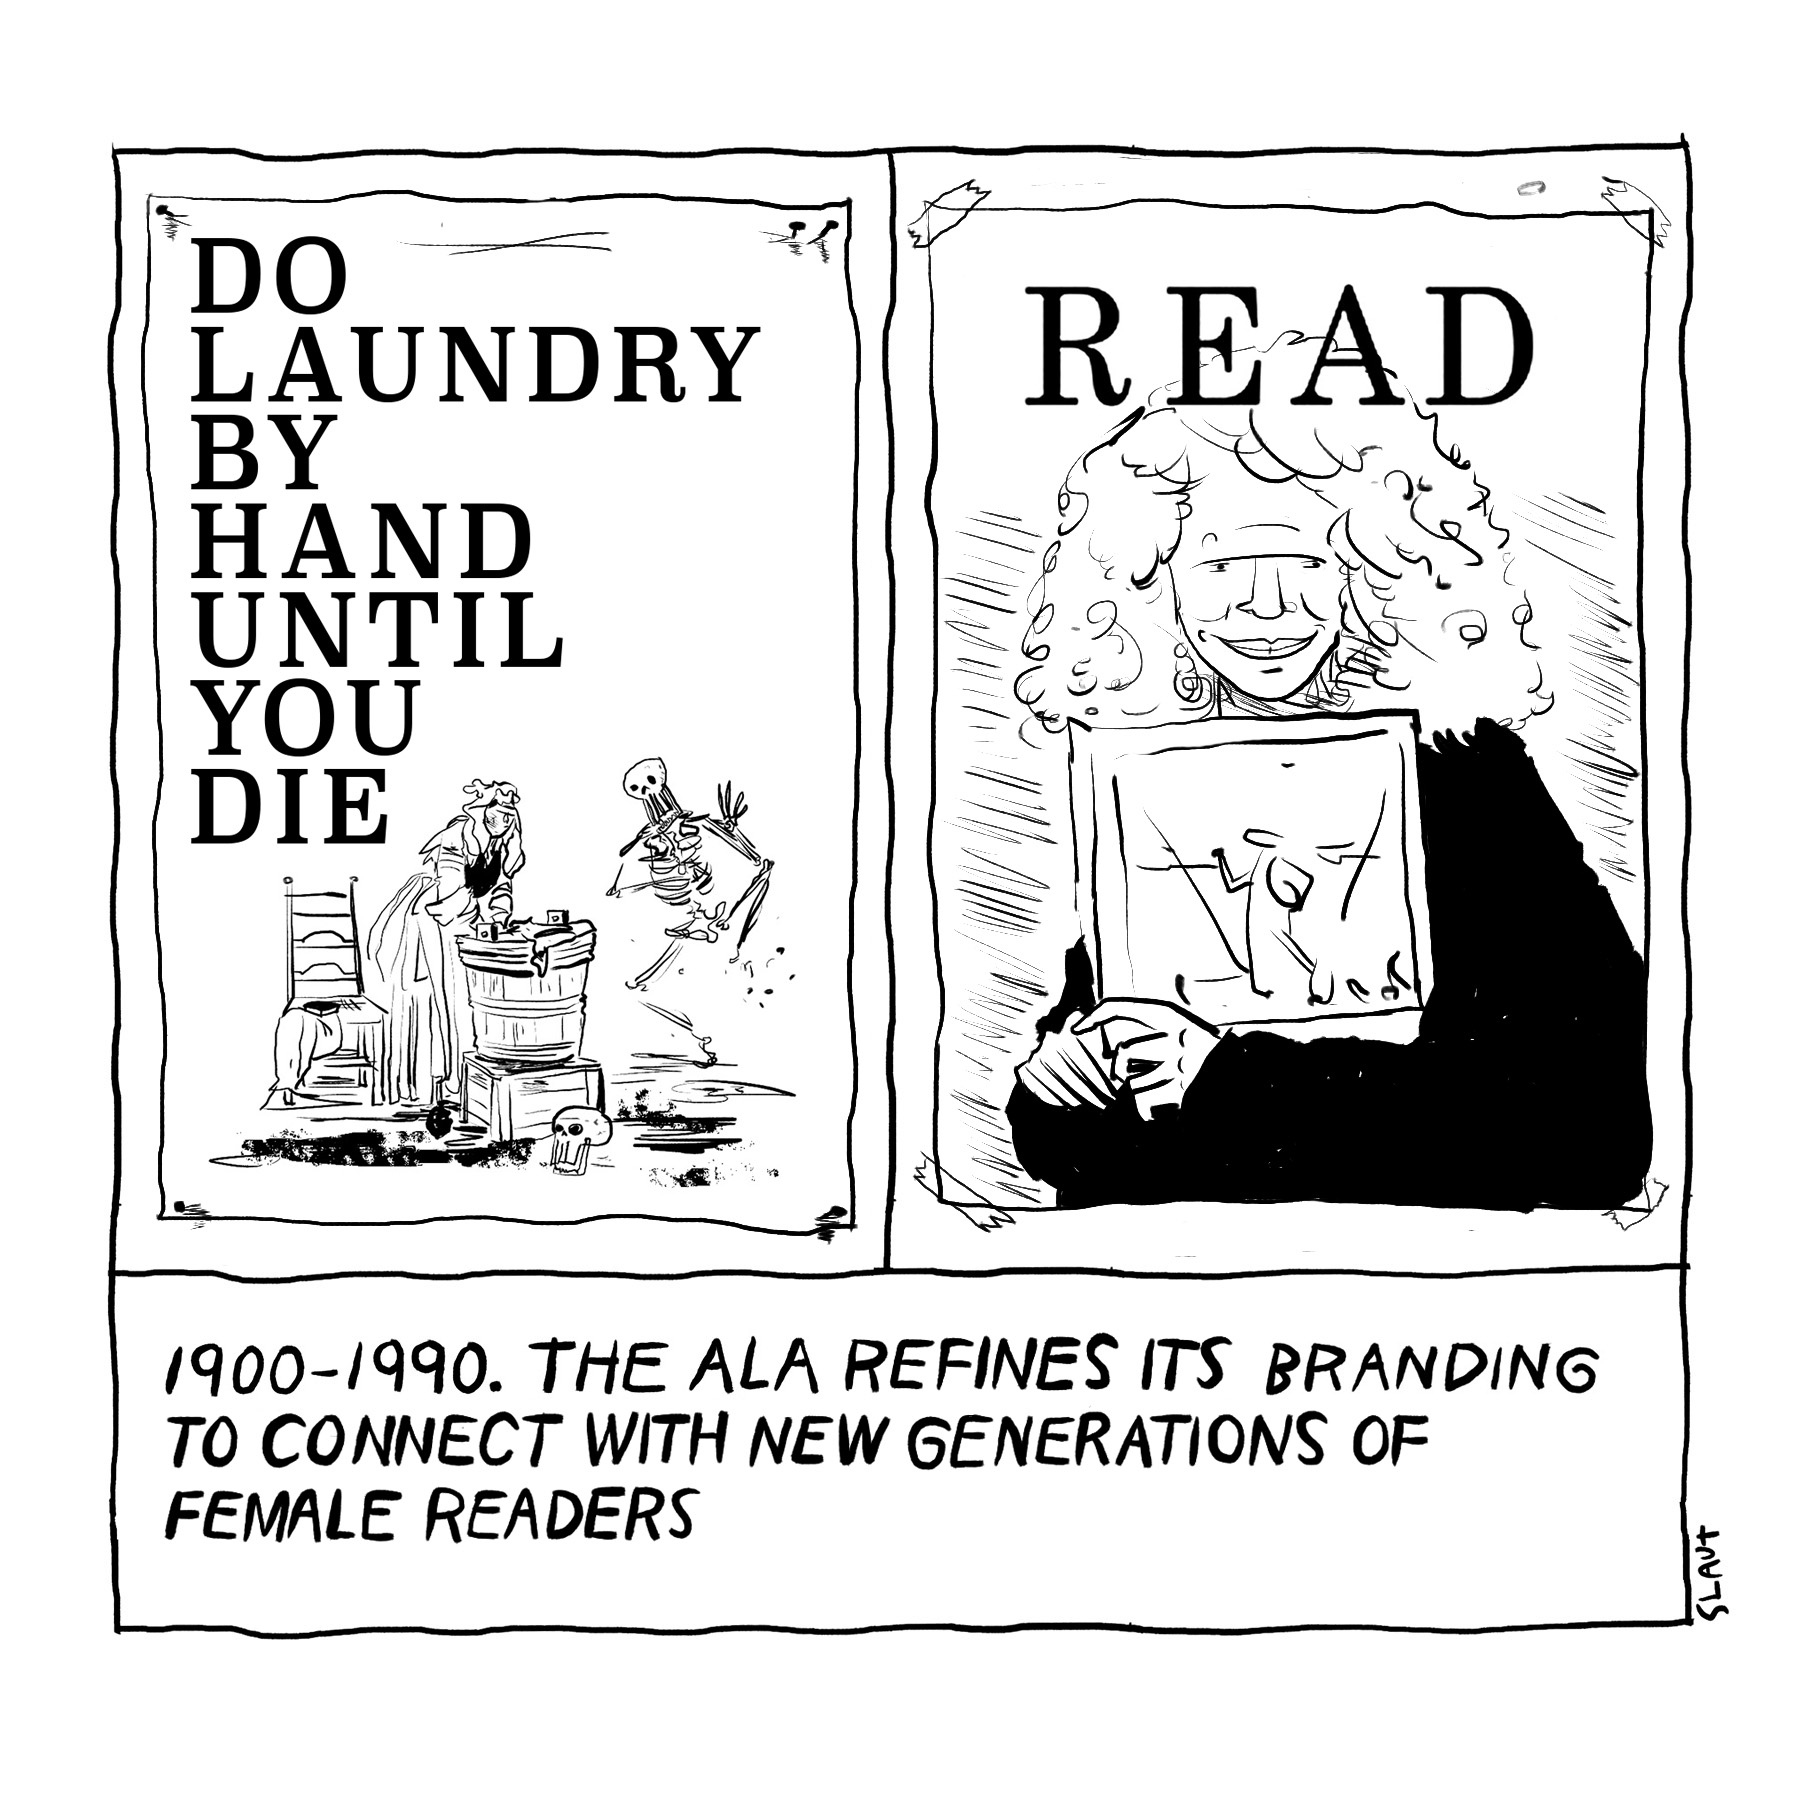 Great Moments in Literacy: The American Library Association